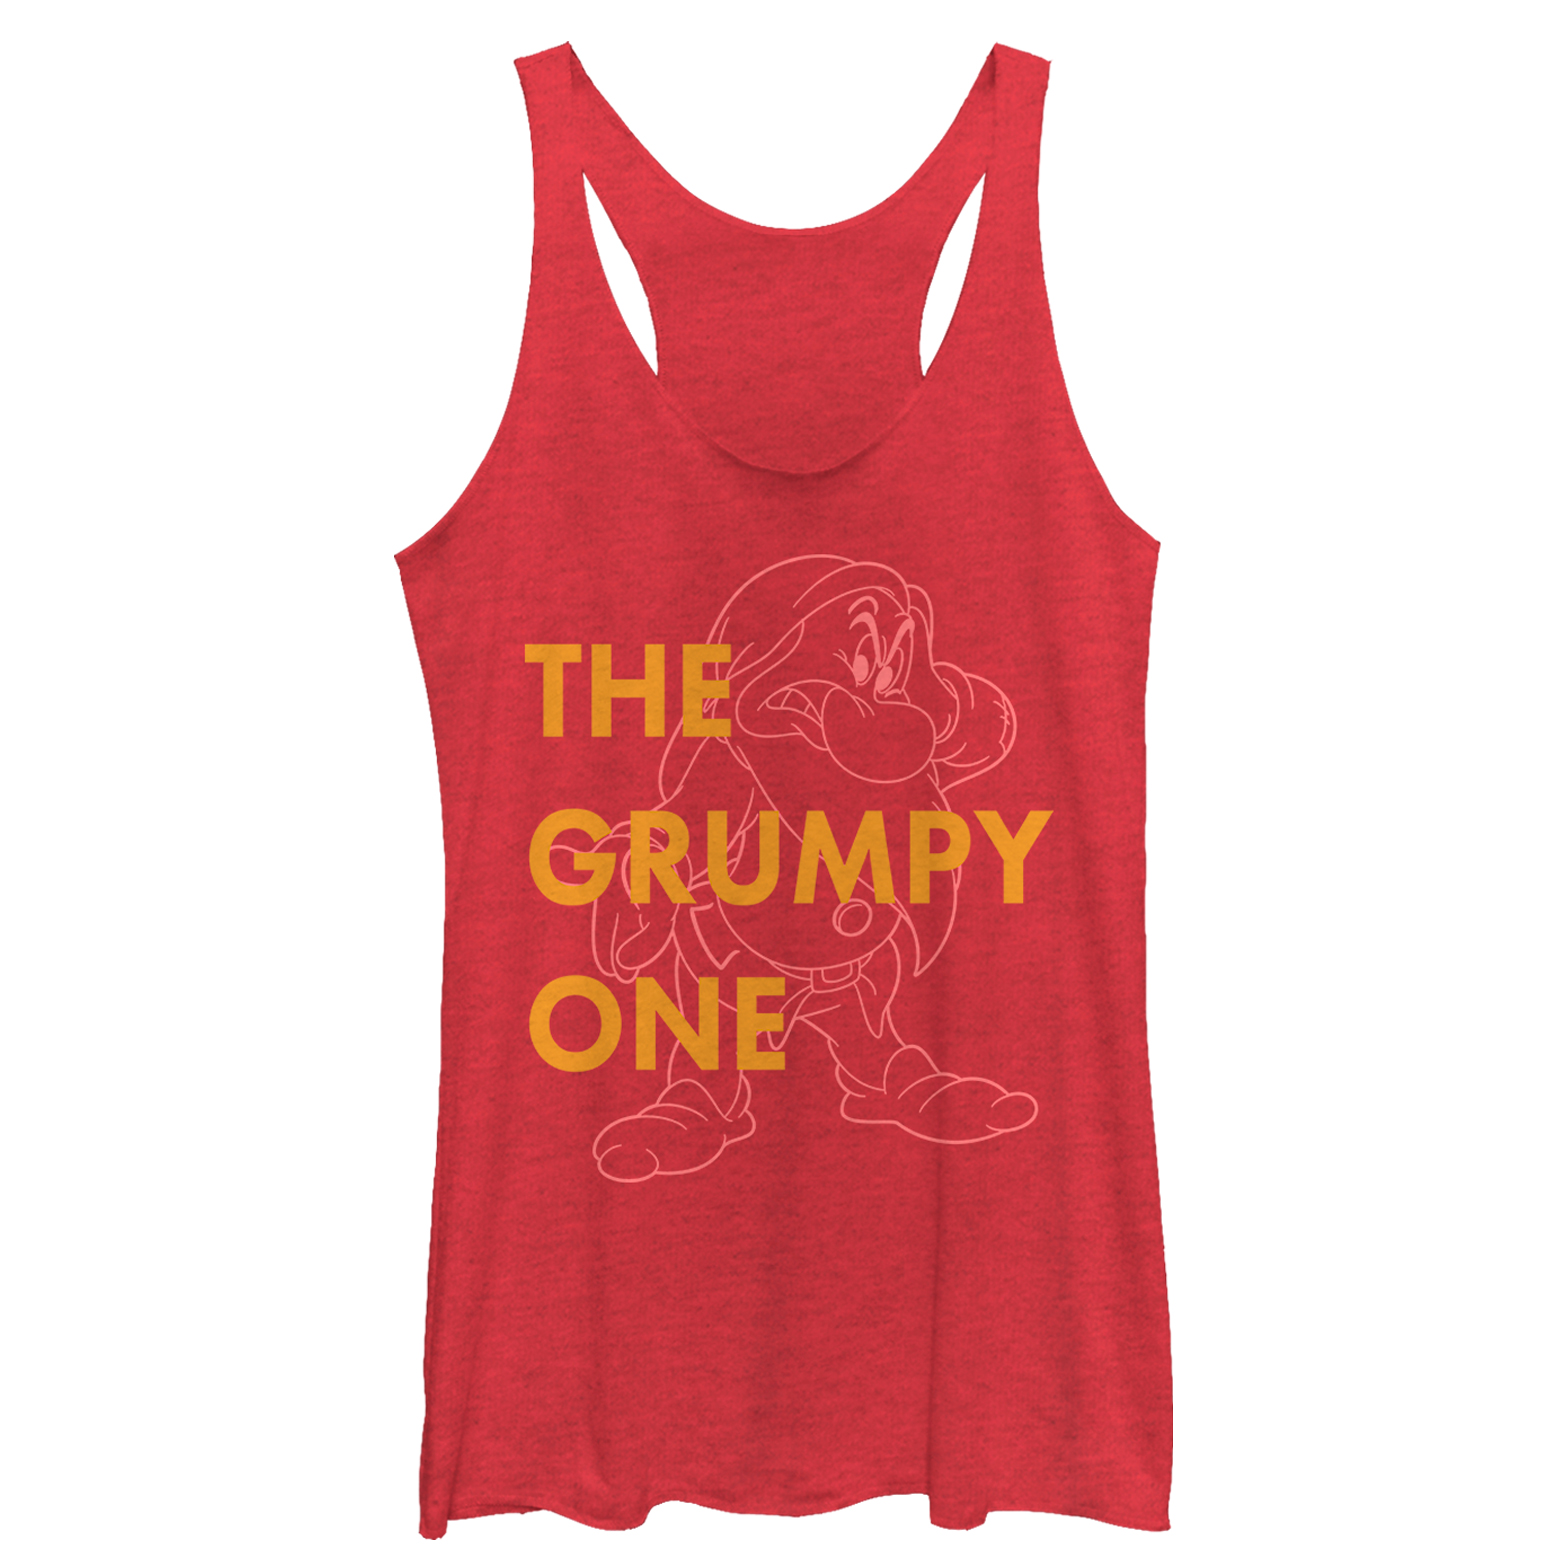 snow white and the seven dwarves women's grumpy one racerback tank top